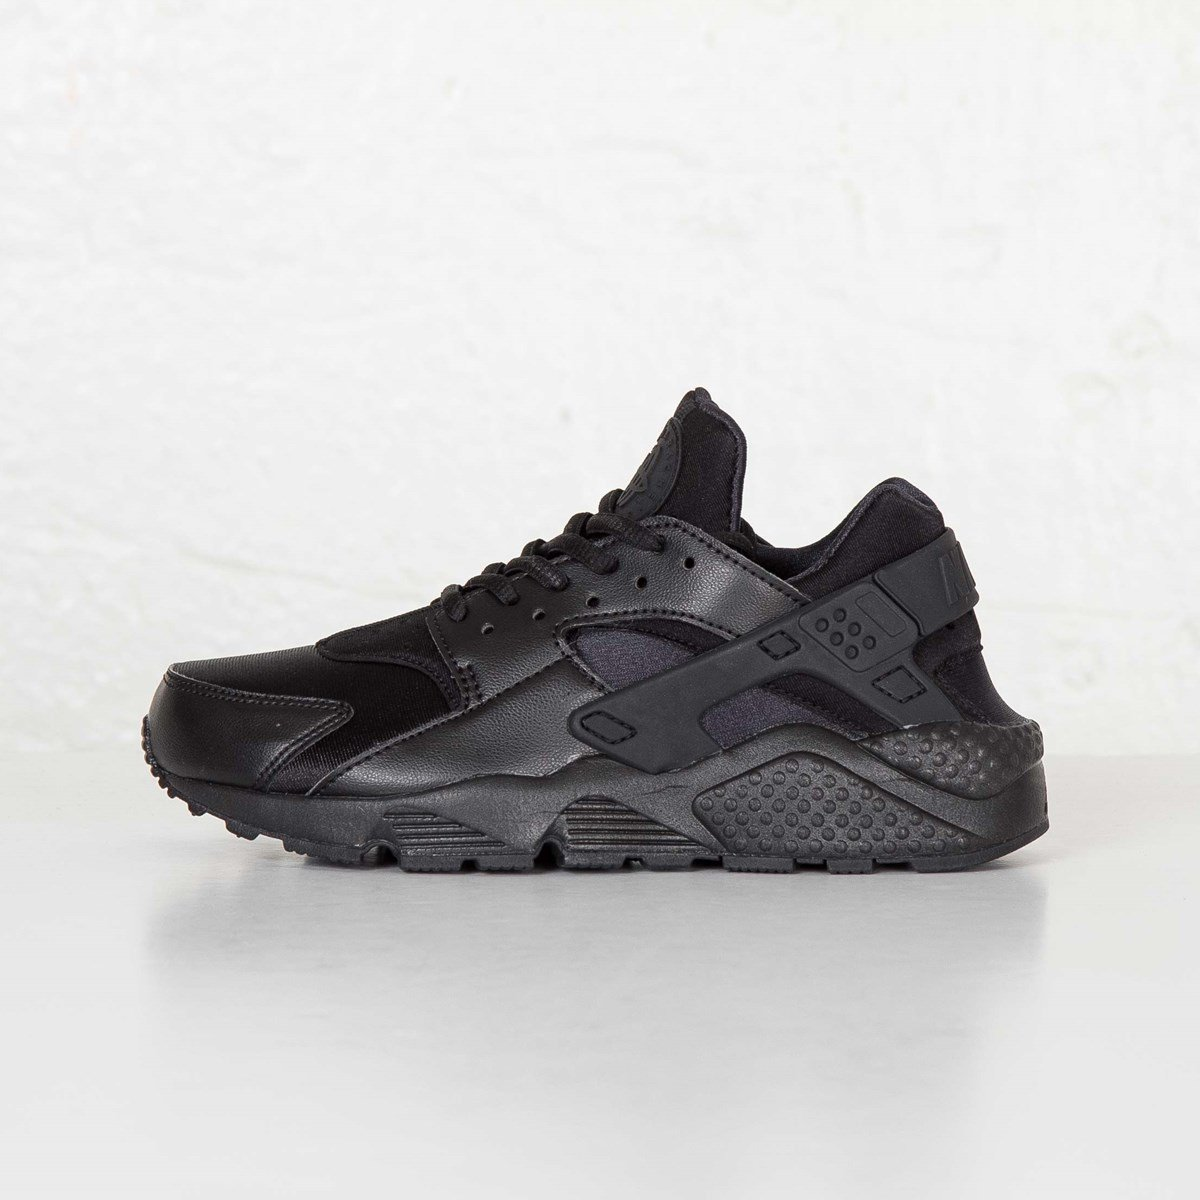 7685b896f293 Nike Wmns Air Huarache Run - 634835-012 - Sneakersnstuff